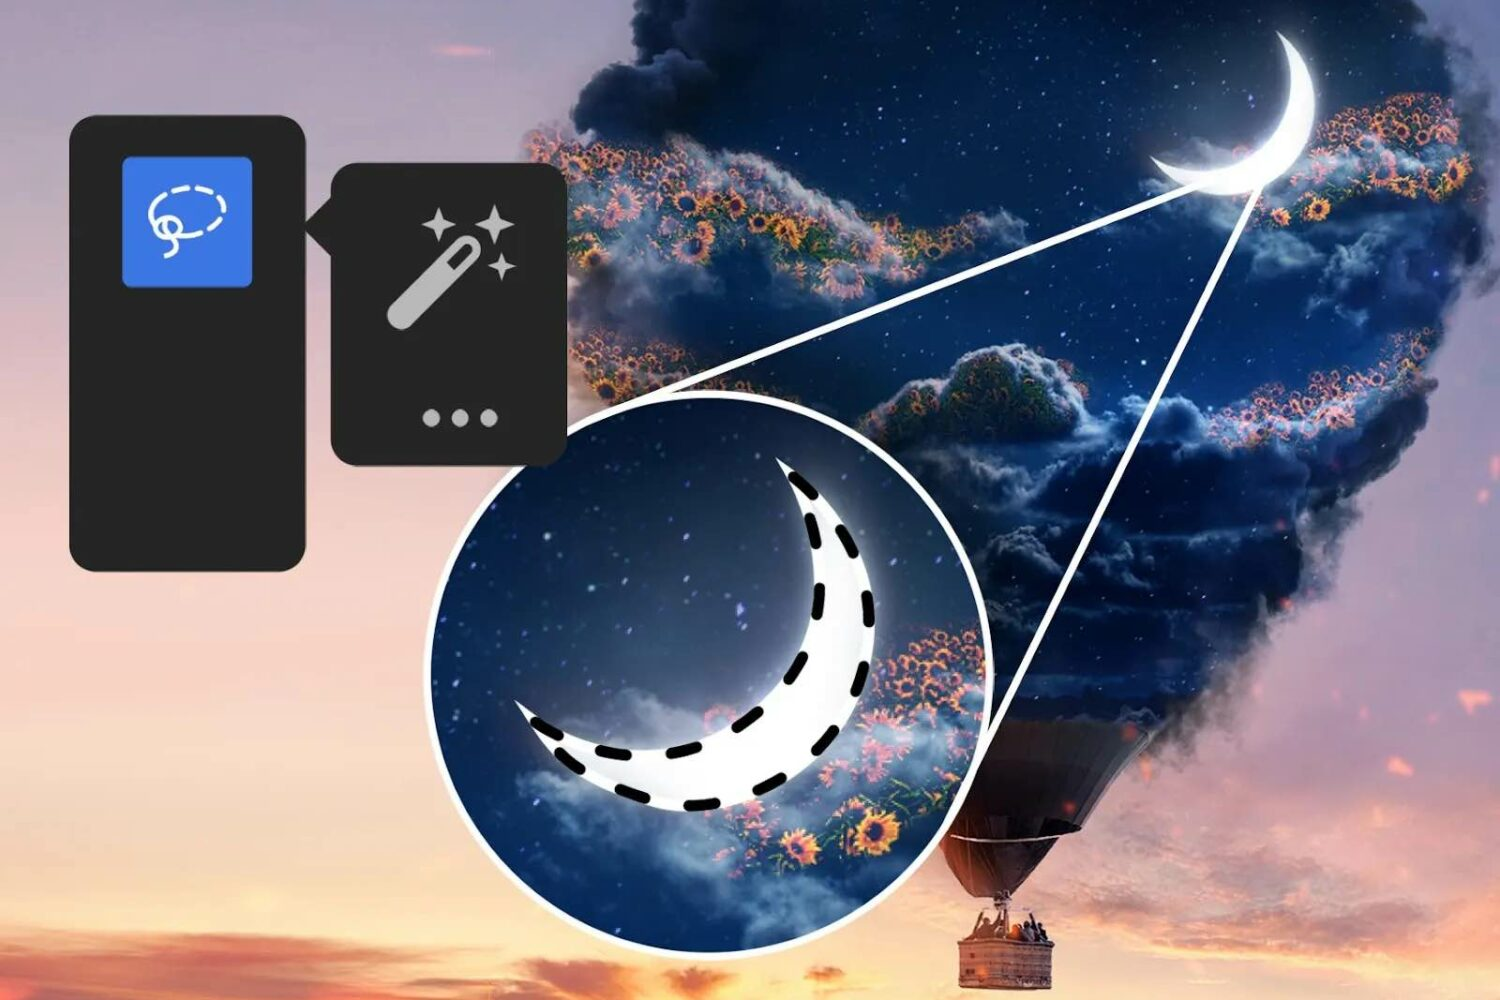 Adobe promotional image showing the Magic Wand tool in Photoshop for iPad